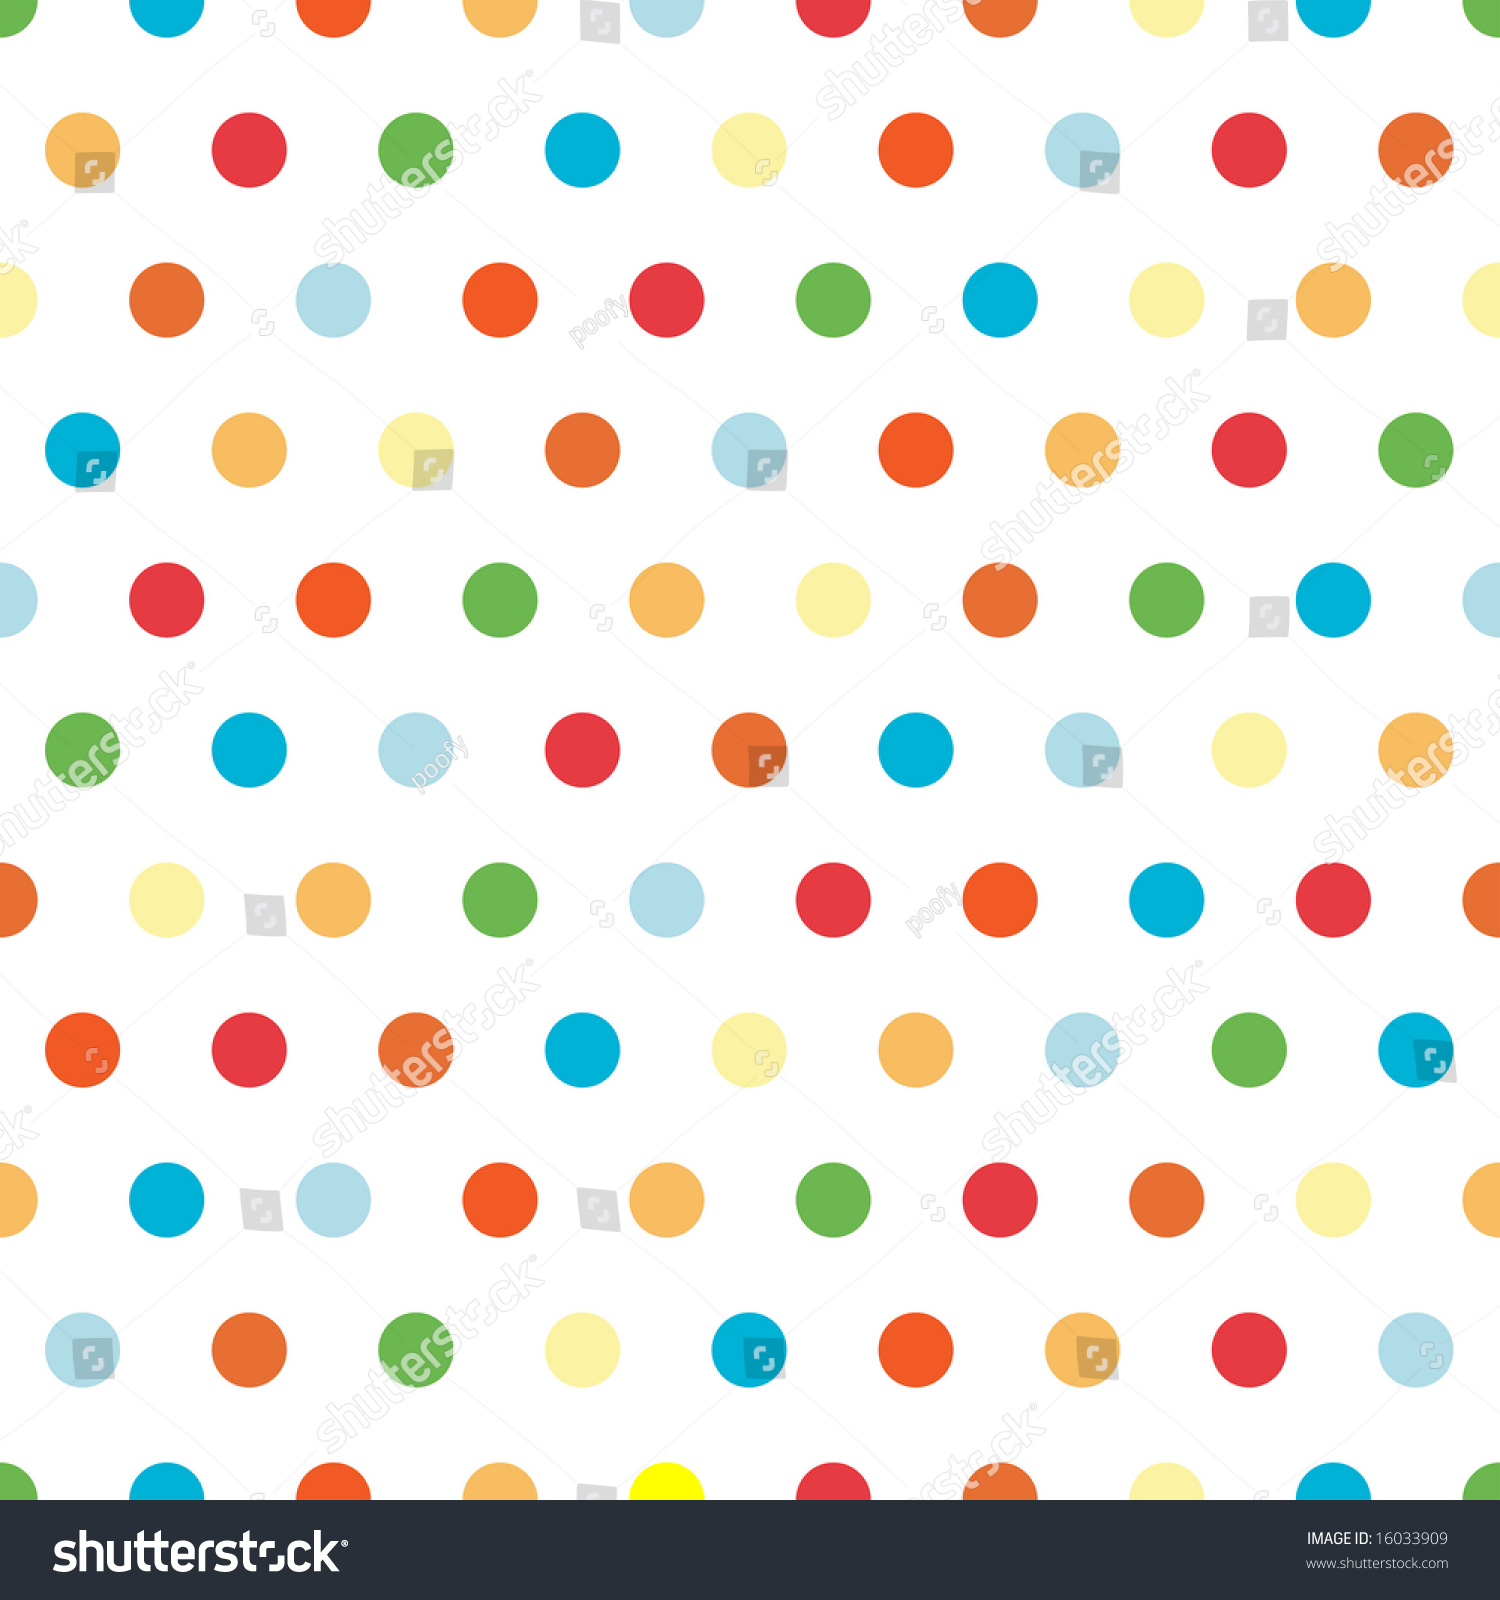 Polka Dots Pattern In Bright Colors Stock Photo 16033909 ...